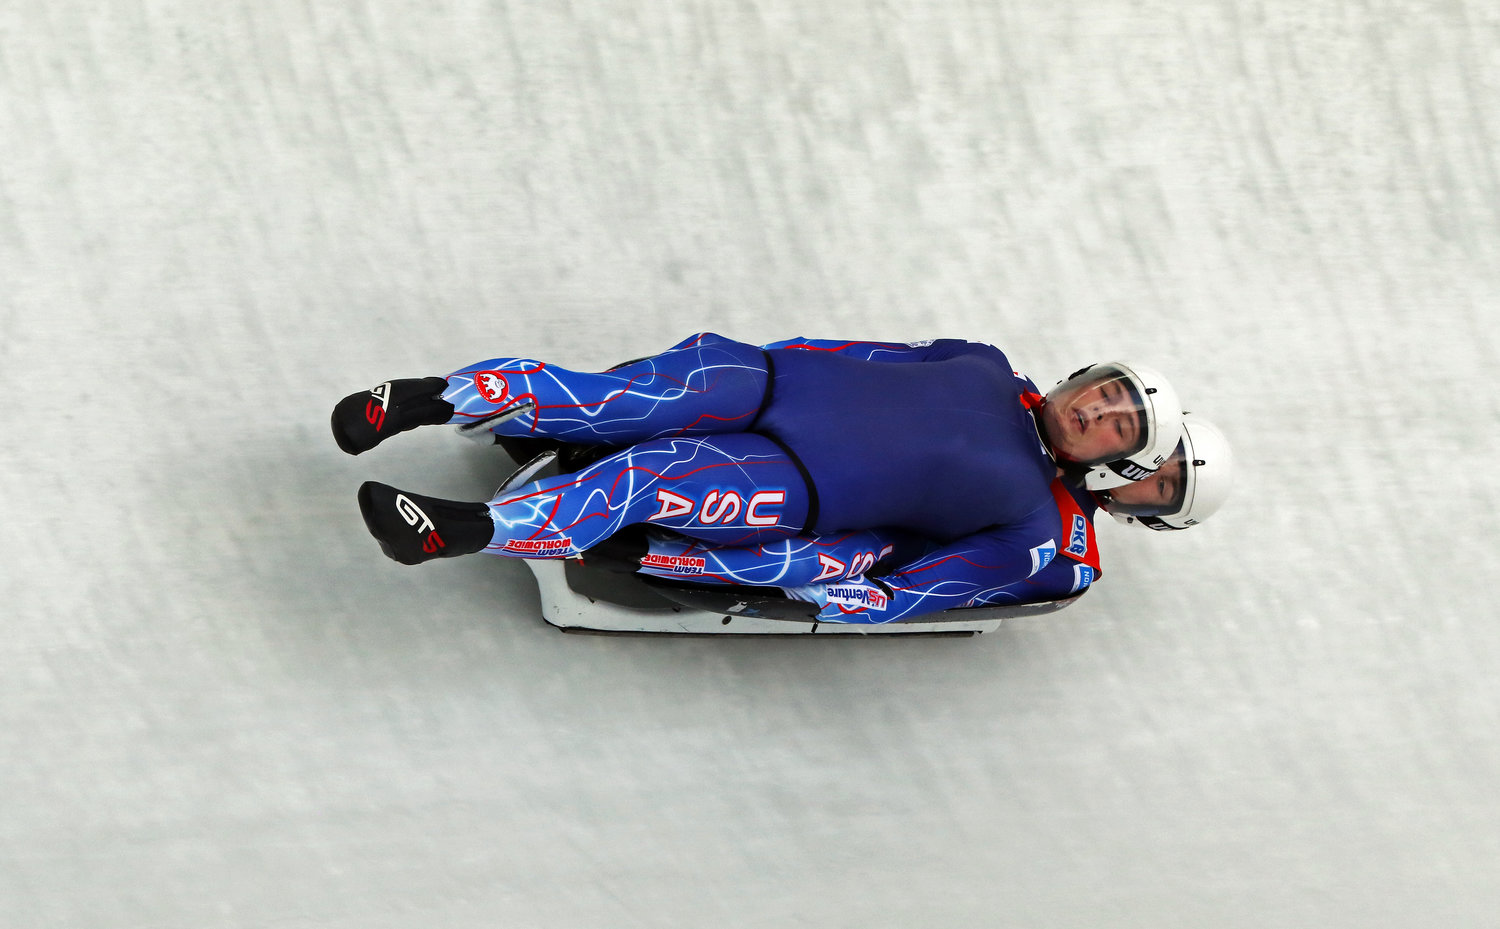 Luge slider Sam Day, on top, and his doubles partner, Michael O'Gara, speeding down a luge run in Igls, Austria, near Innsbruck. Sleds can reach speeds of 85 mph.